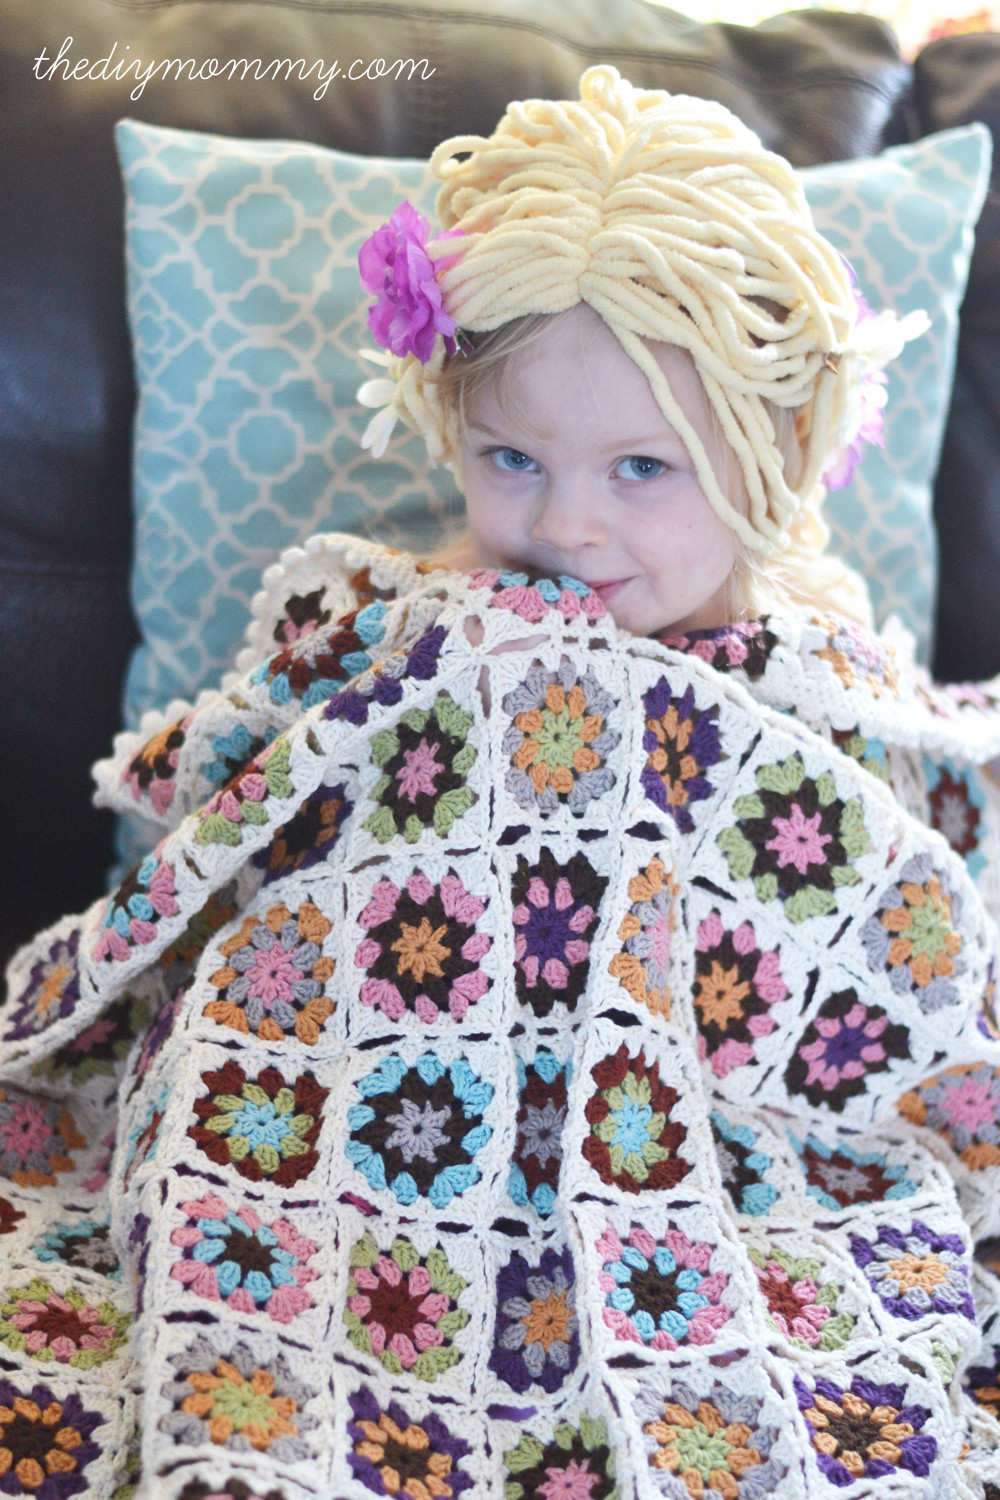 Crochet an Organic Cotton Granny Square Baby Blanket